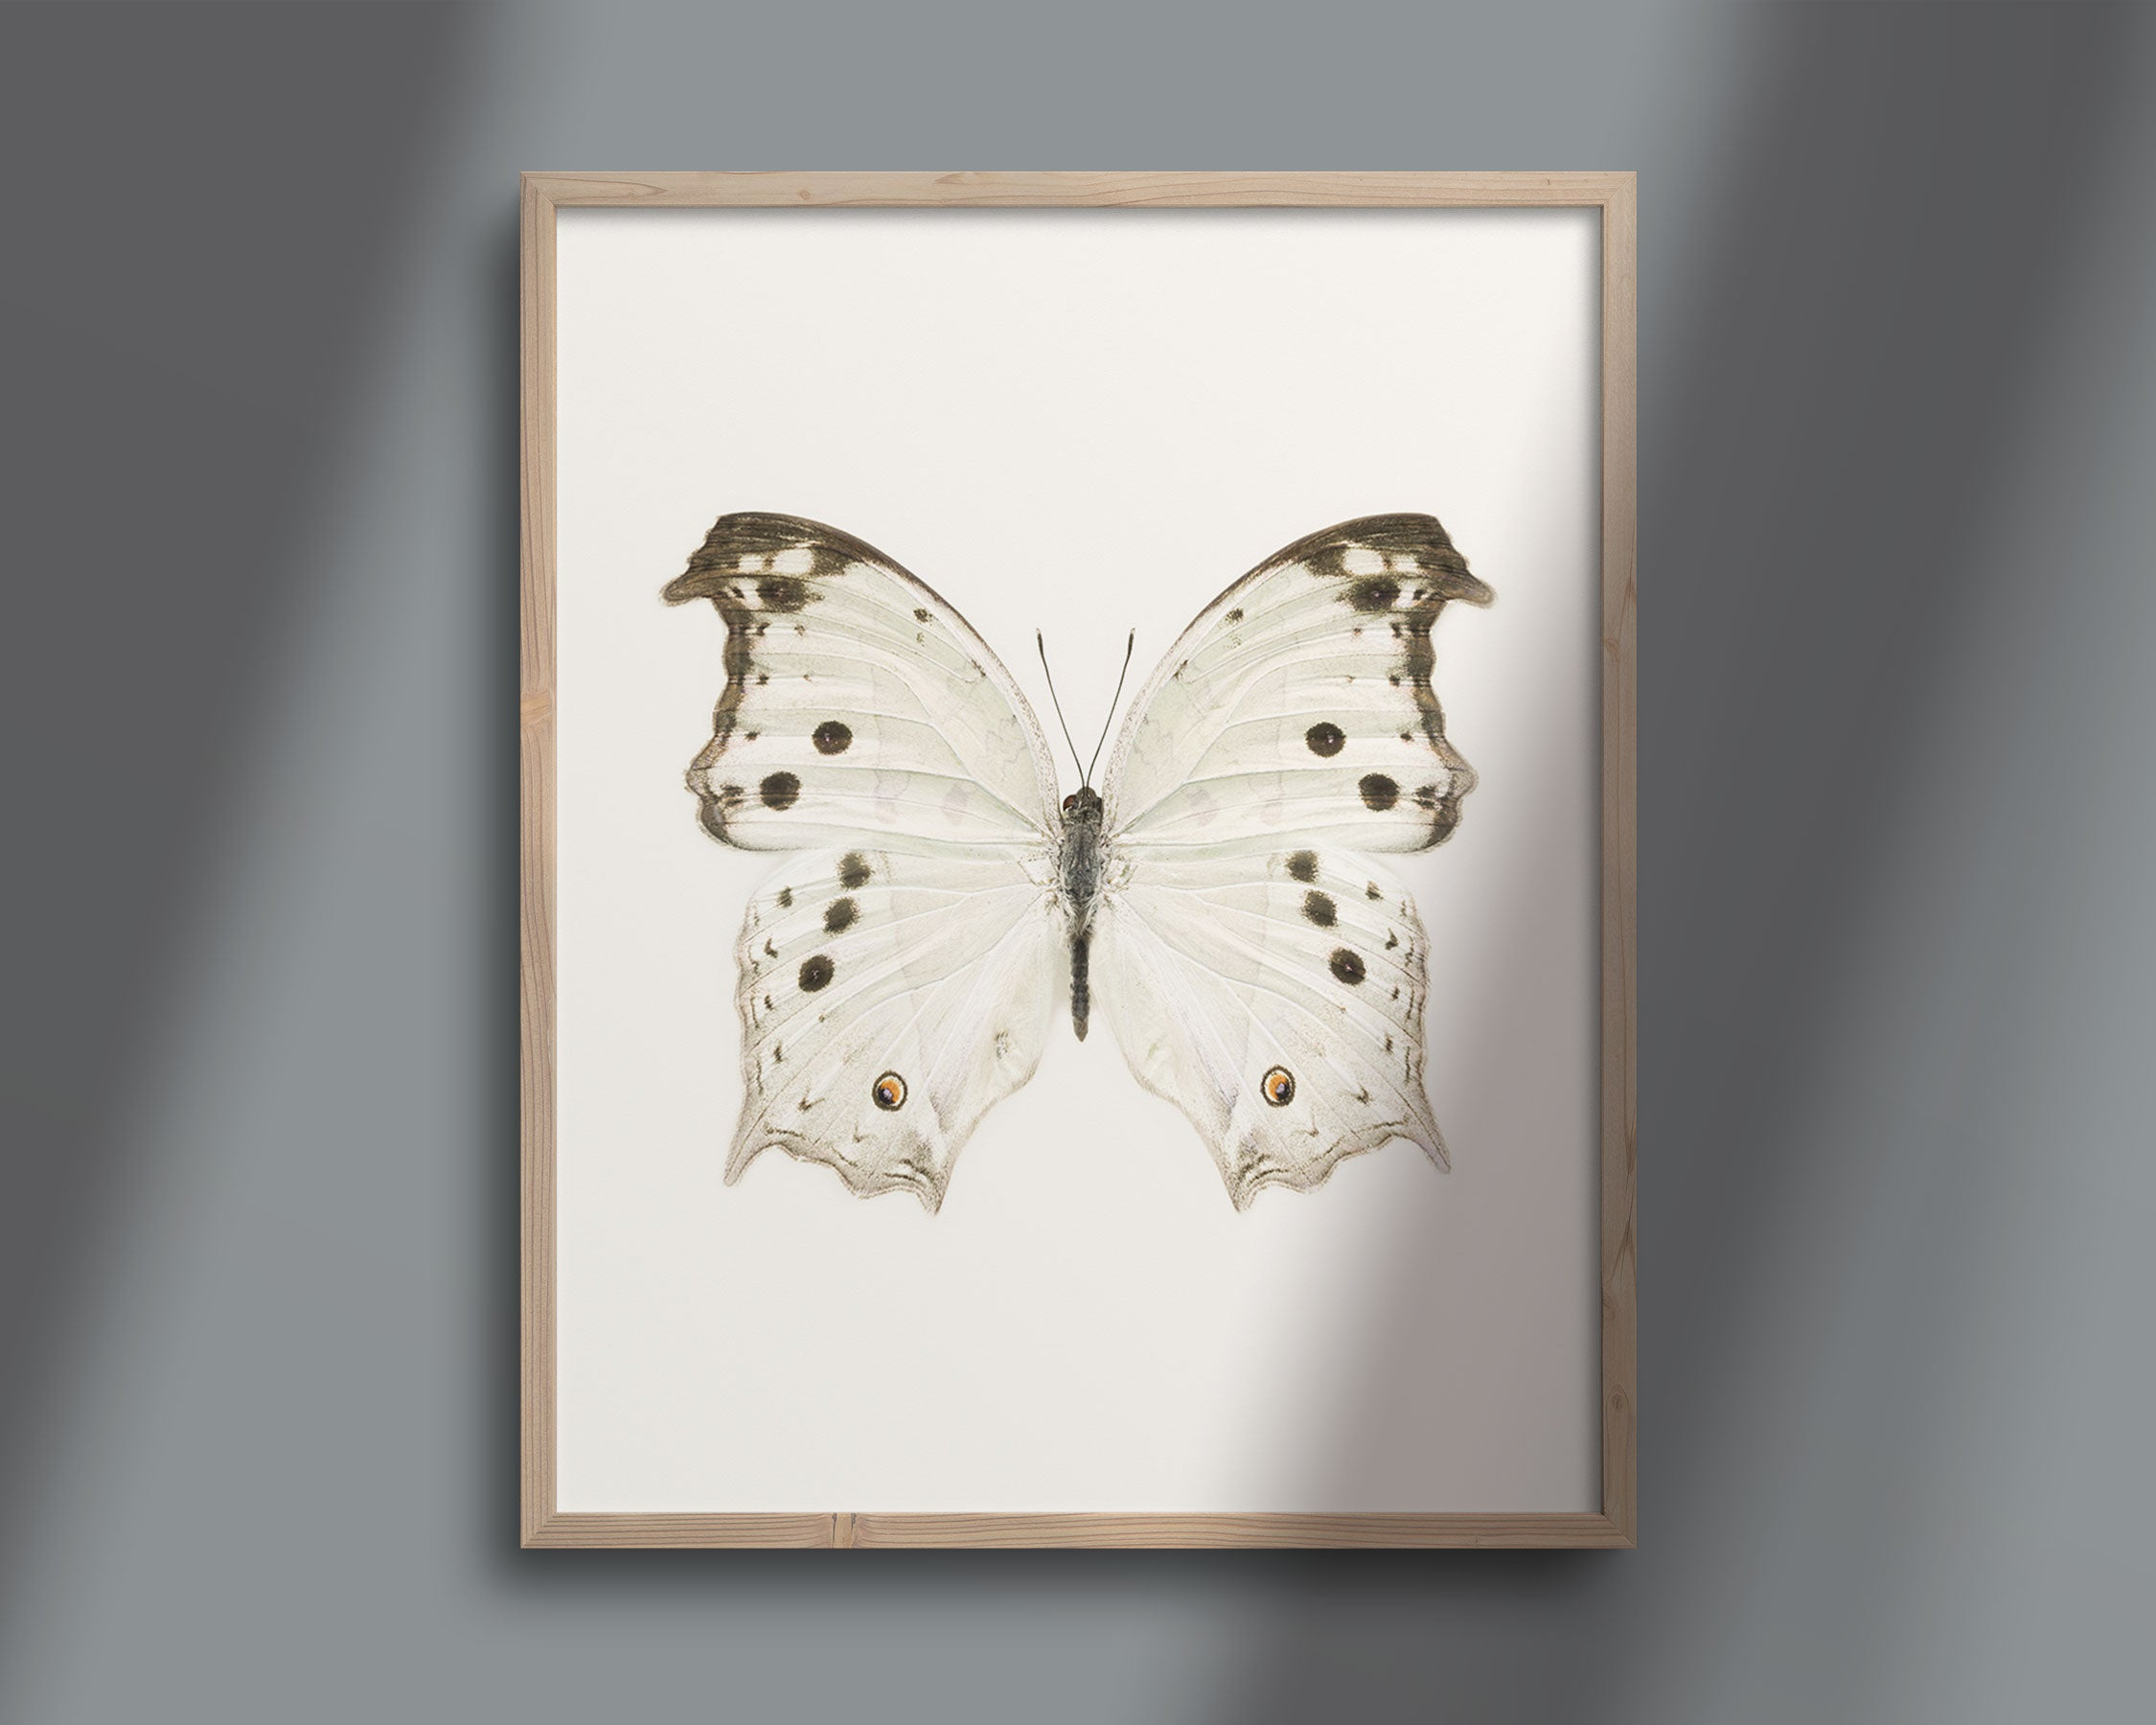 Butterfly No. 3 - the Mother-of-Pearl Butterfly